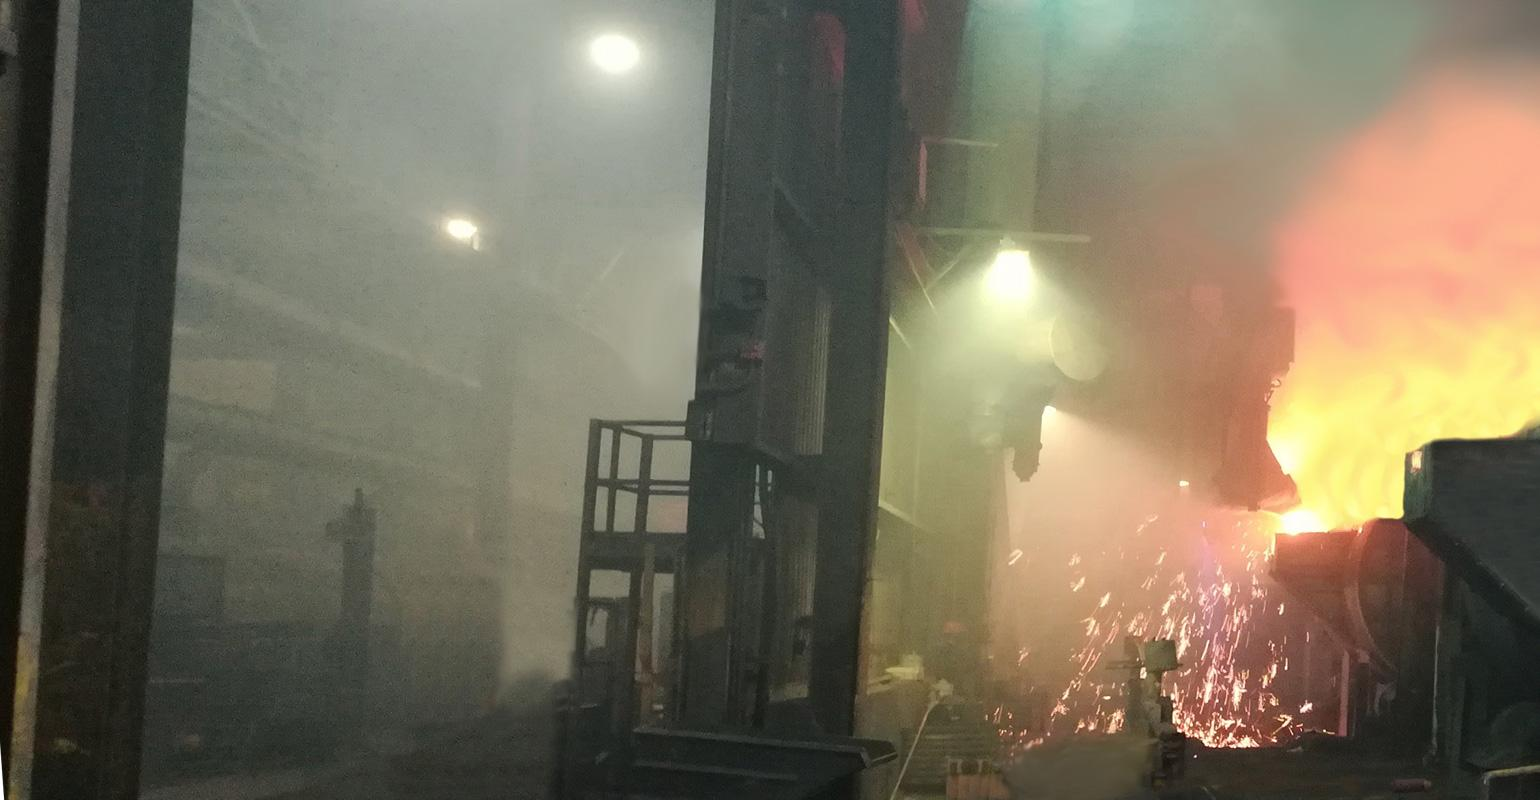 OSHA's standard aims to minimize workers' exposure to respirable crystalline silica, which it cites as a cause of lung cancer, silicosis, COPD, and kidney disease. ( www.foundrymag.com )